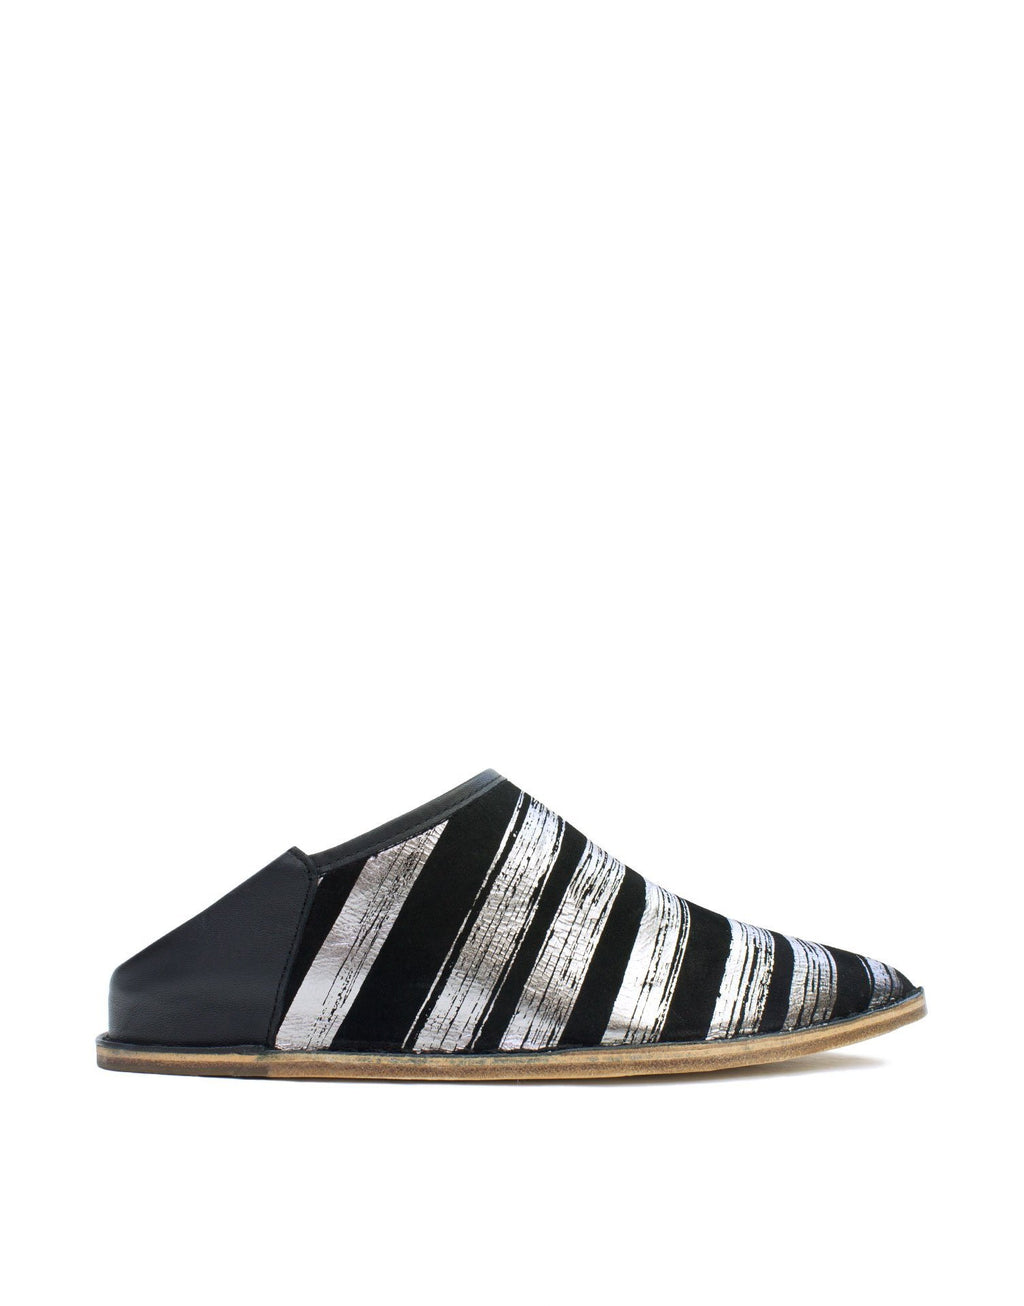 Black and silver striped slip on slipper shoe by designer Georgina Goodman